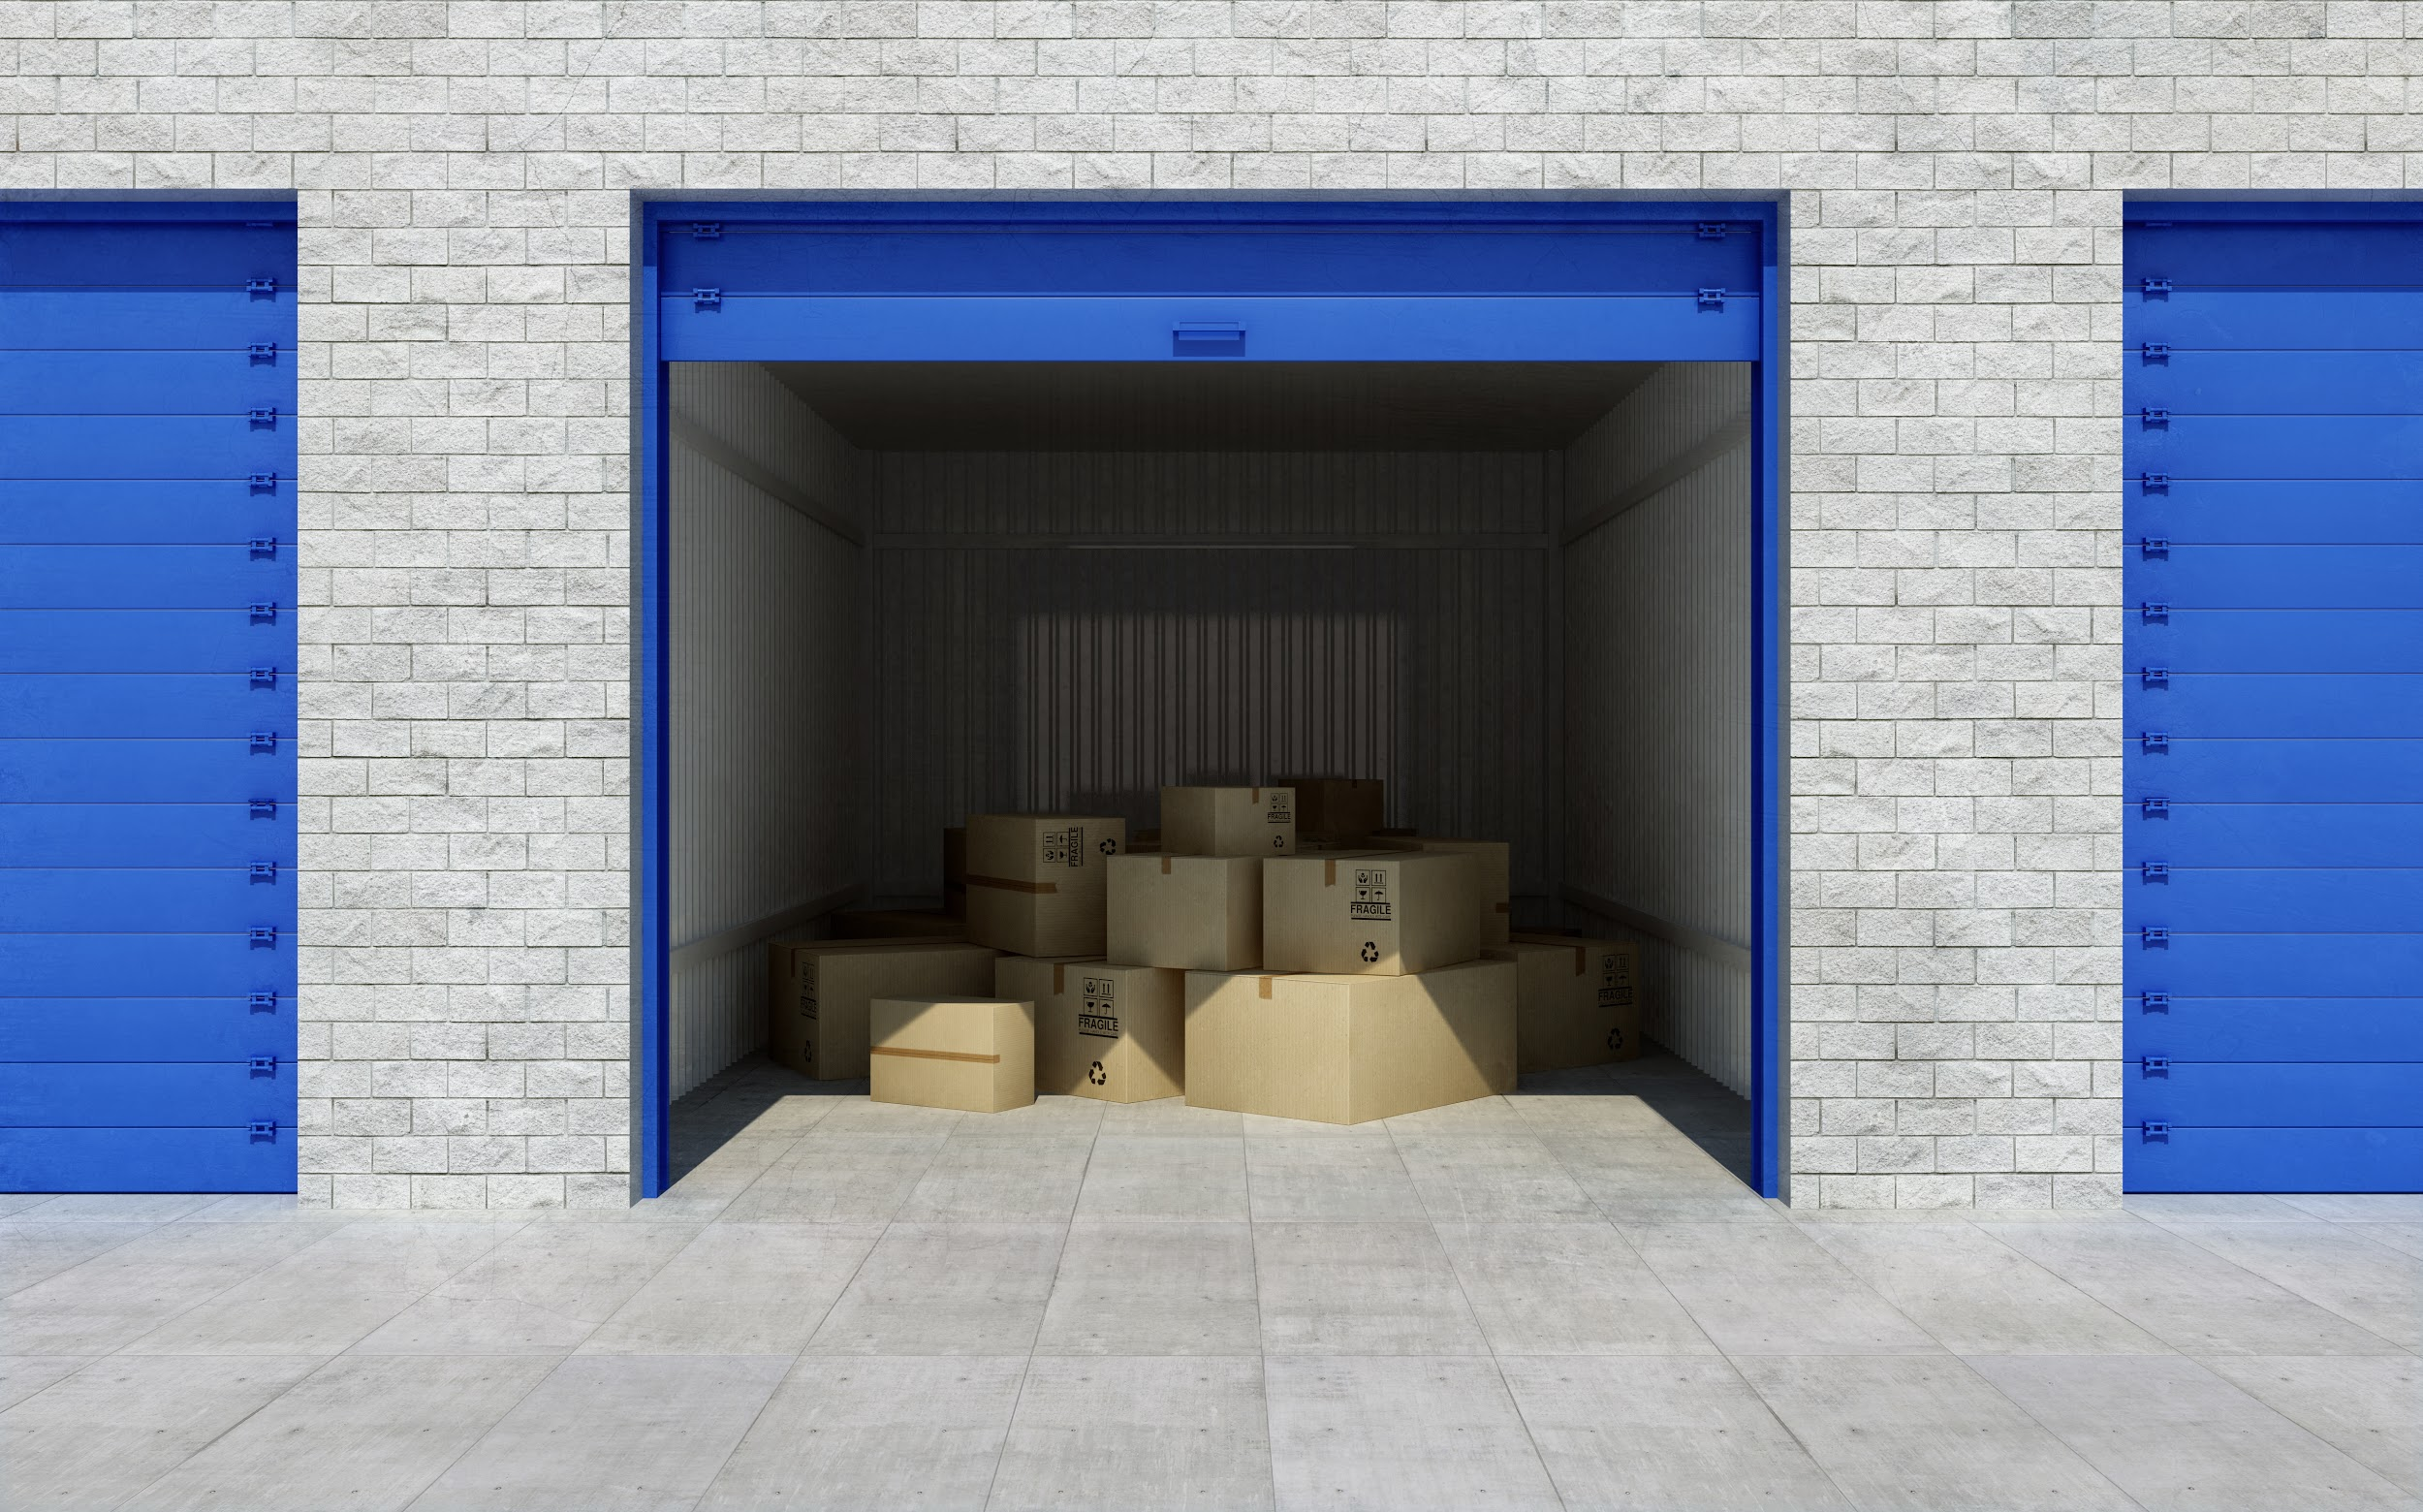 3 Surprising Reasons You Probably Need a Storage Locker